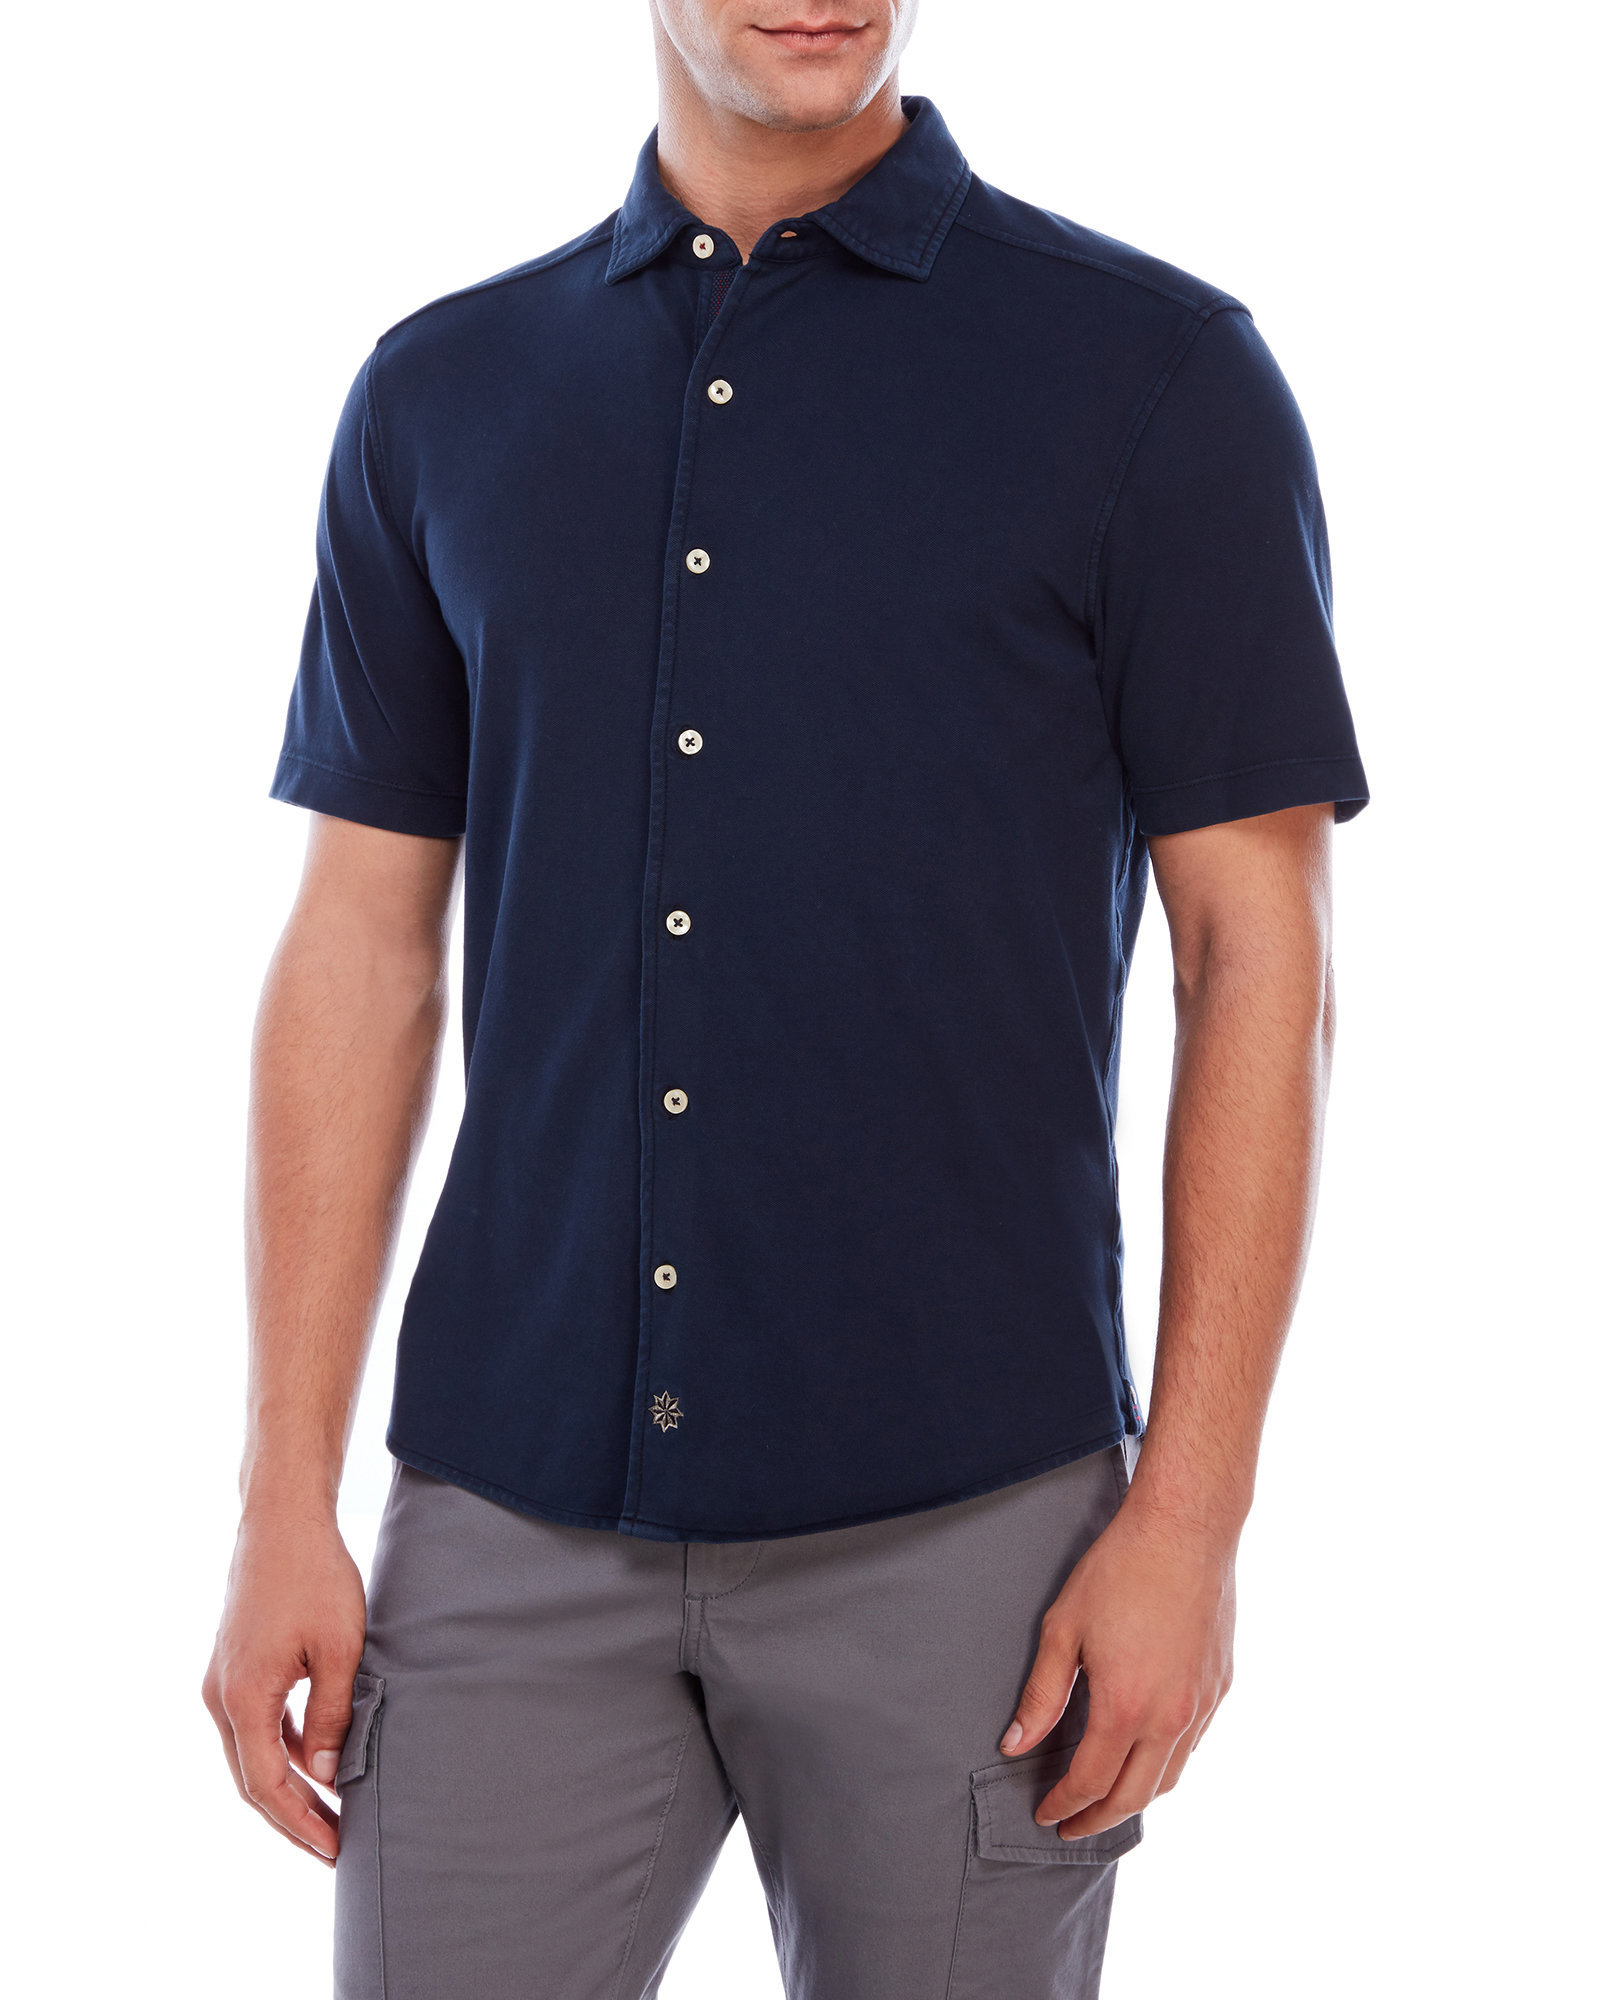 Thaddeus button front pique polo shirt in blue for men lyst for Century 21 dress shirts